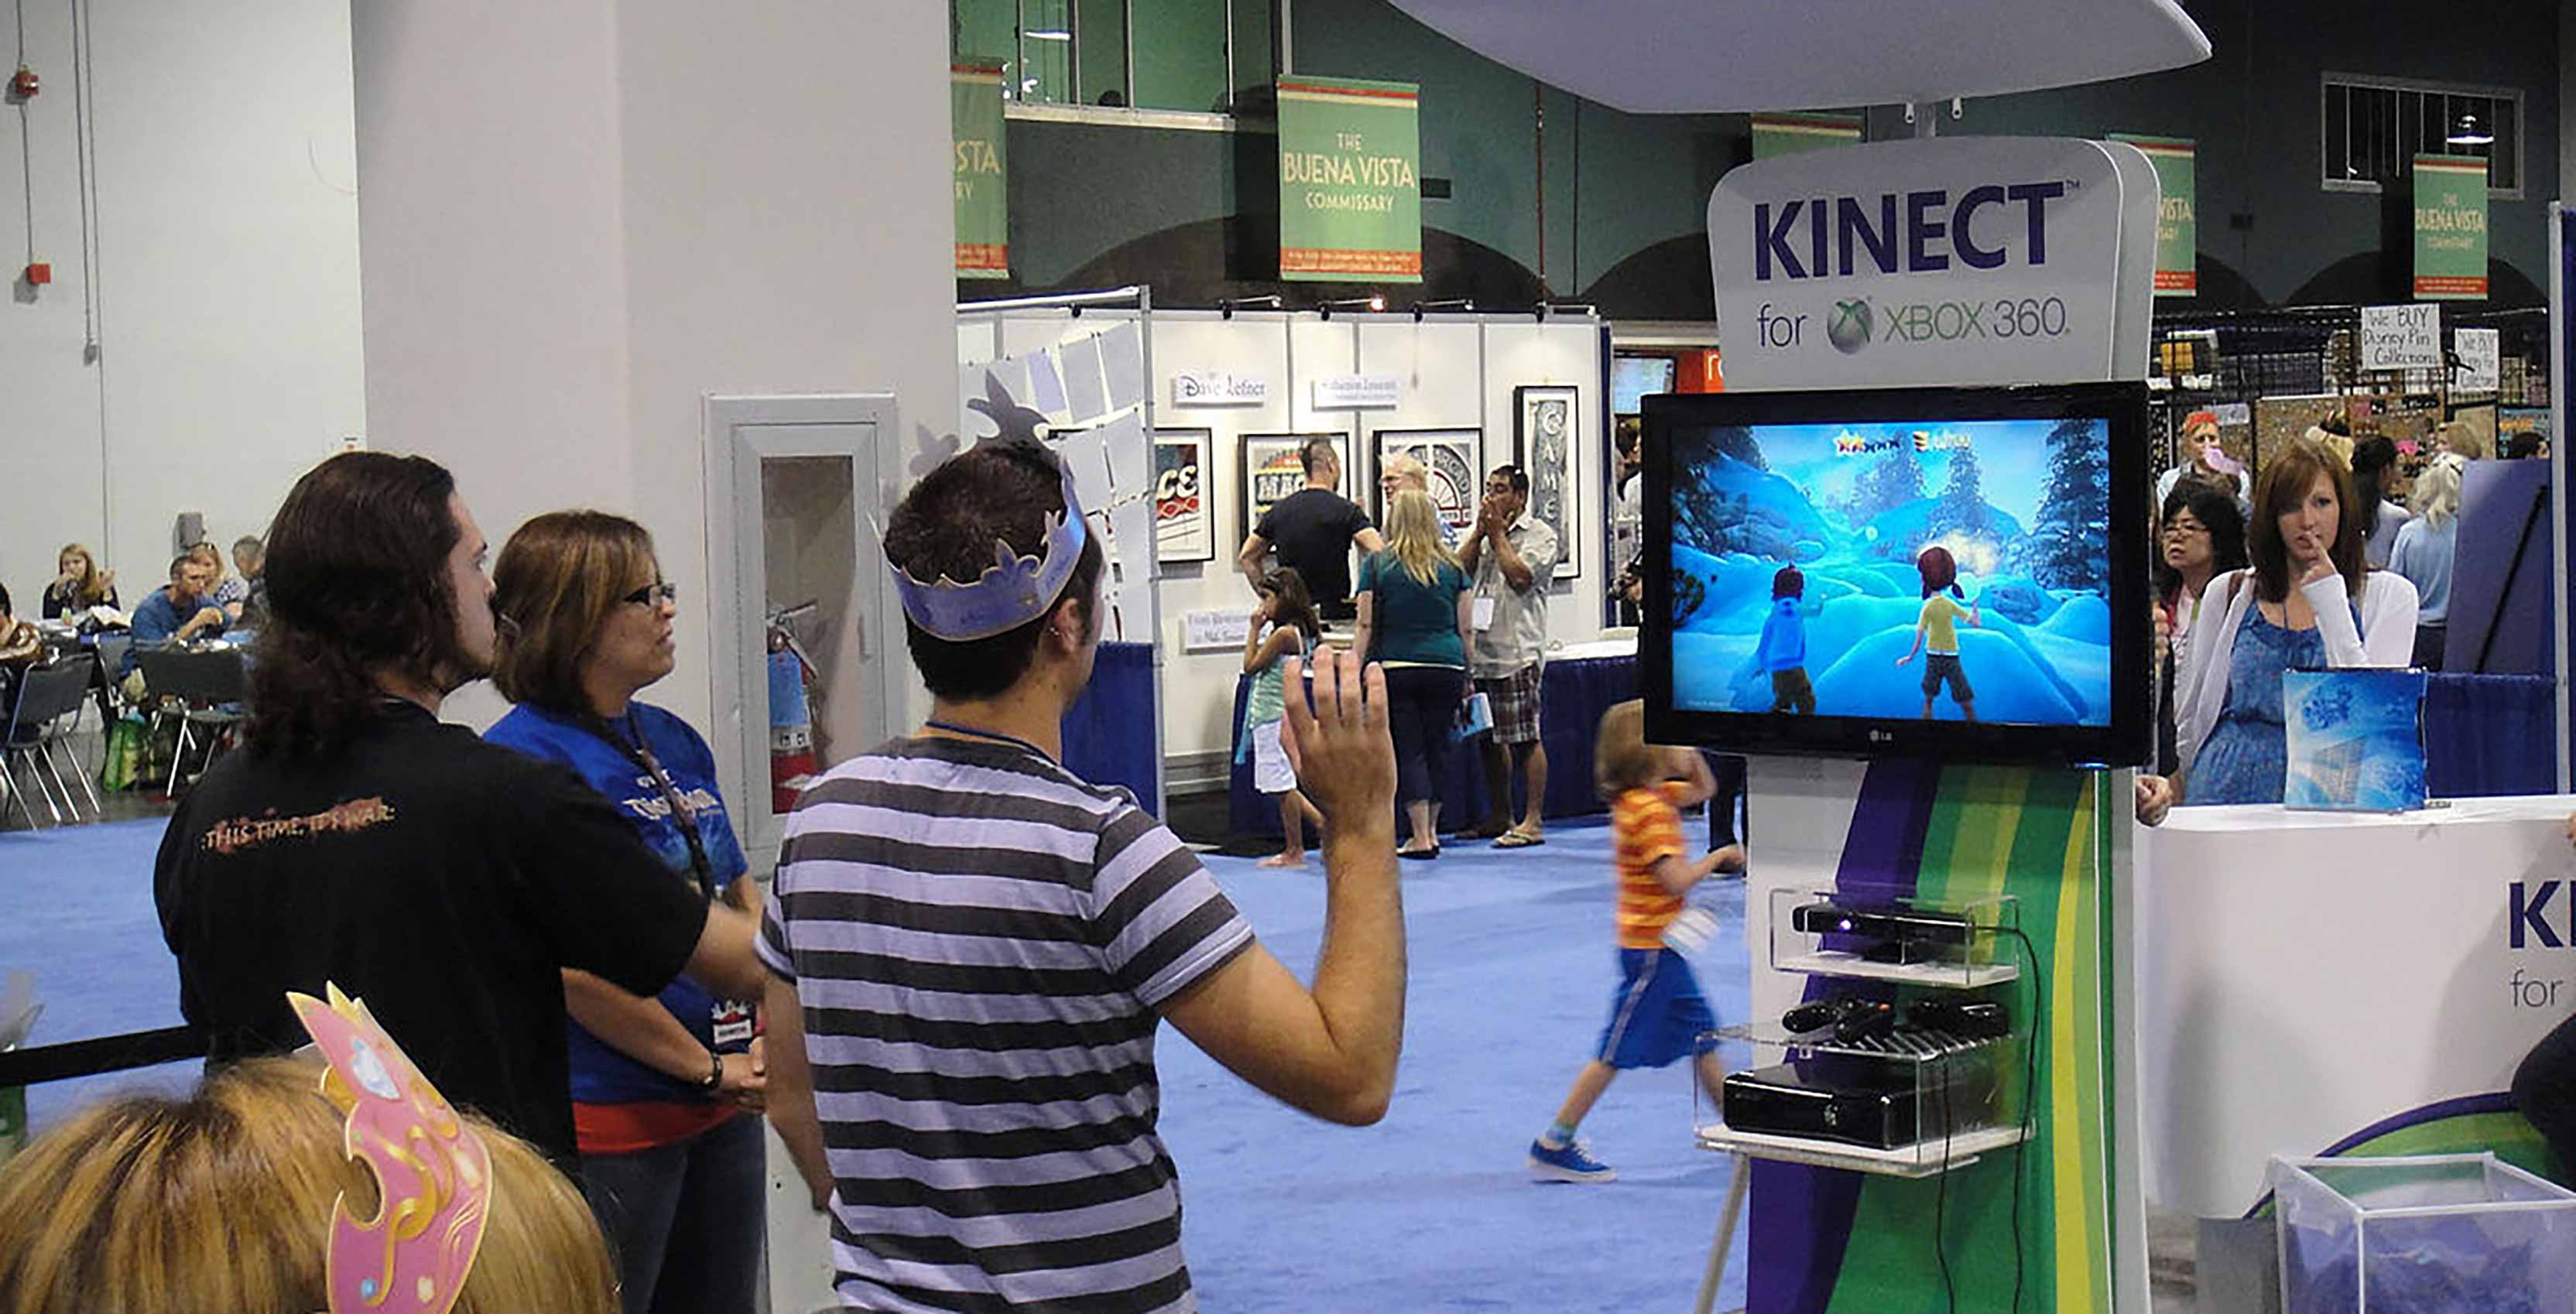 Kinect Disney game demonstration